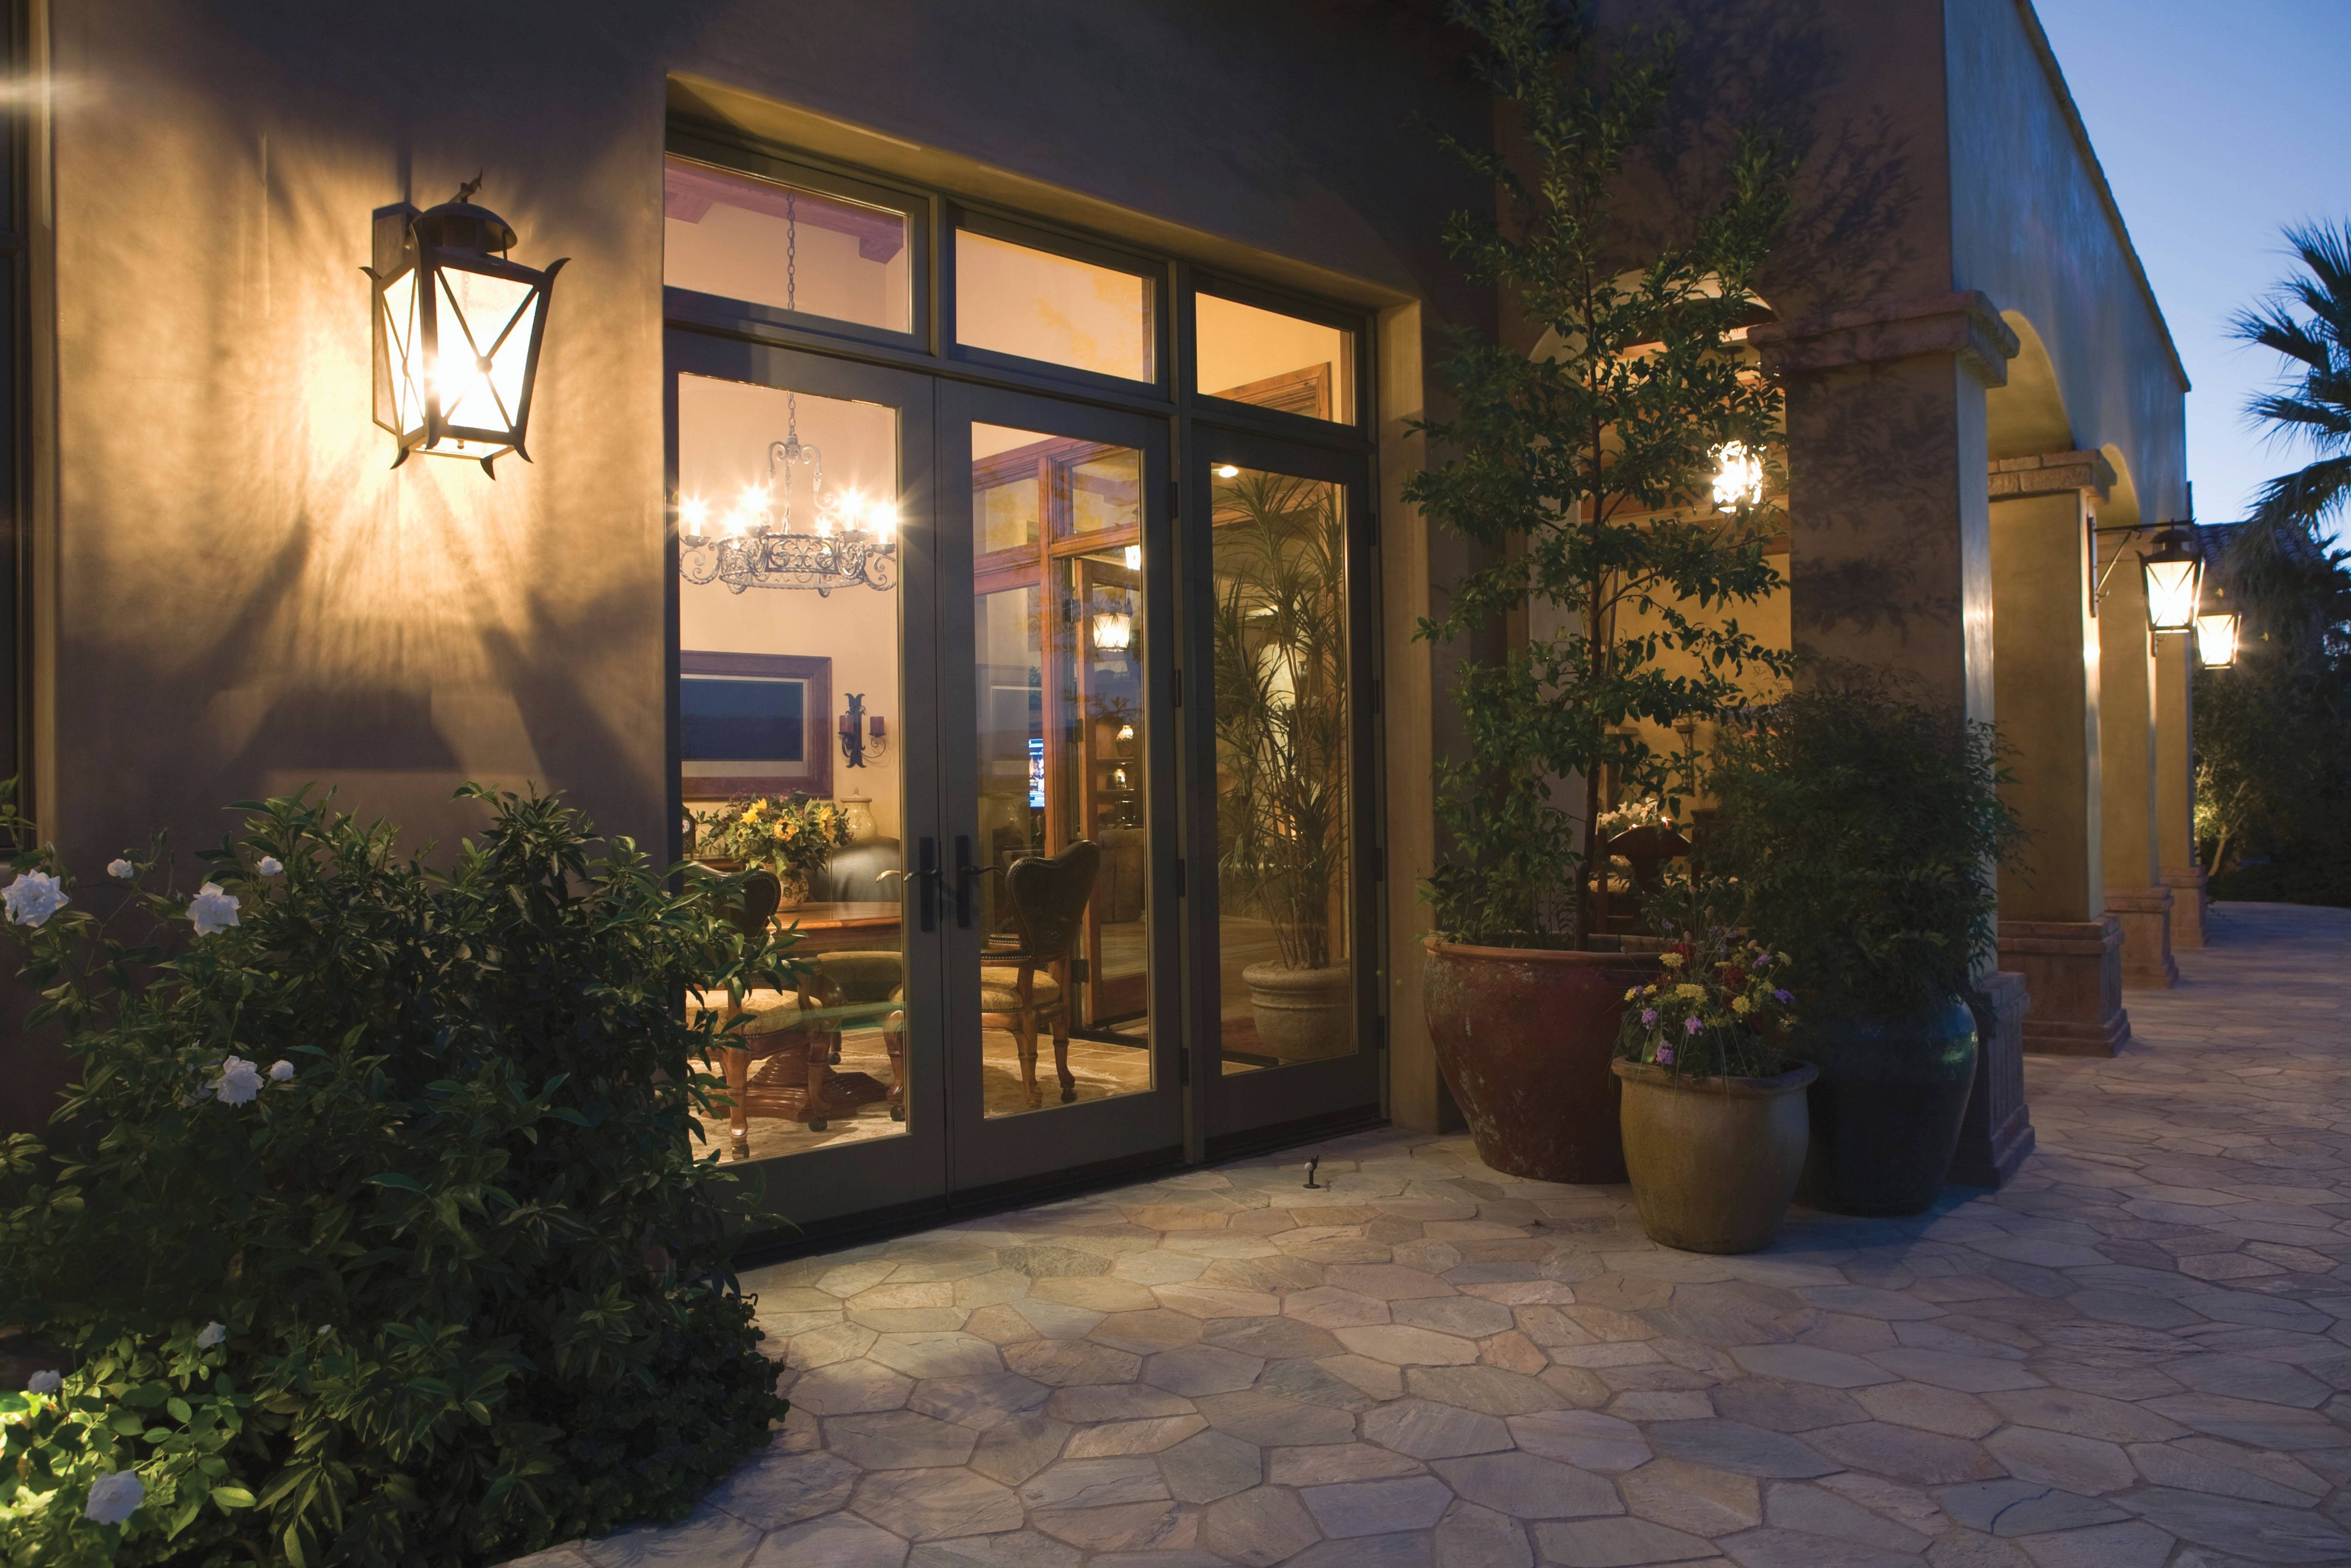 Wall-mounted lanterns at a door leading to the patio or outdoor space will provide a warm, welcoming look.